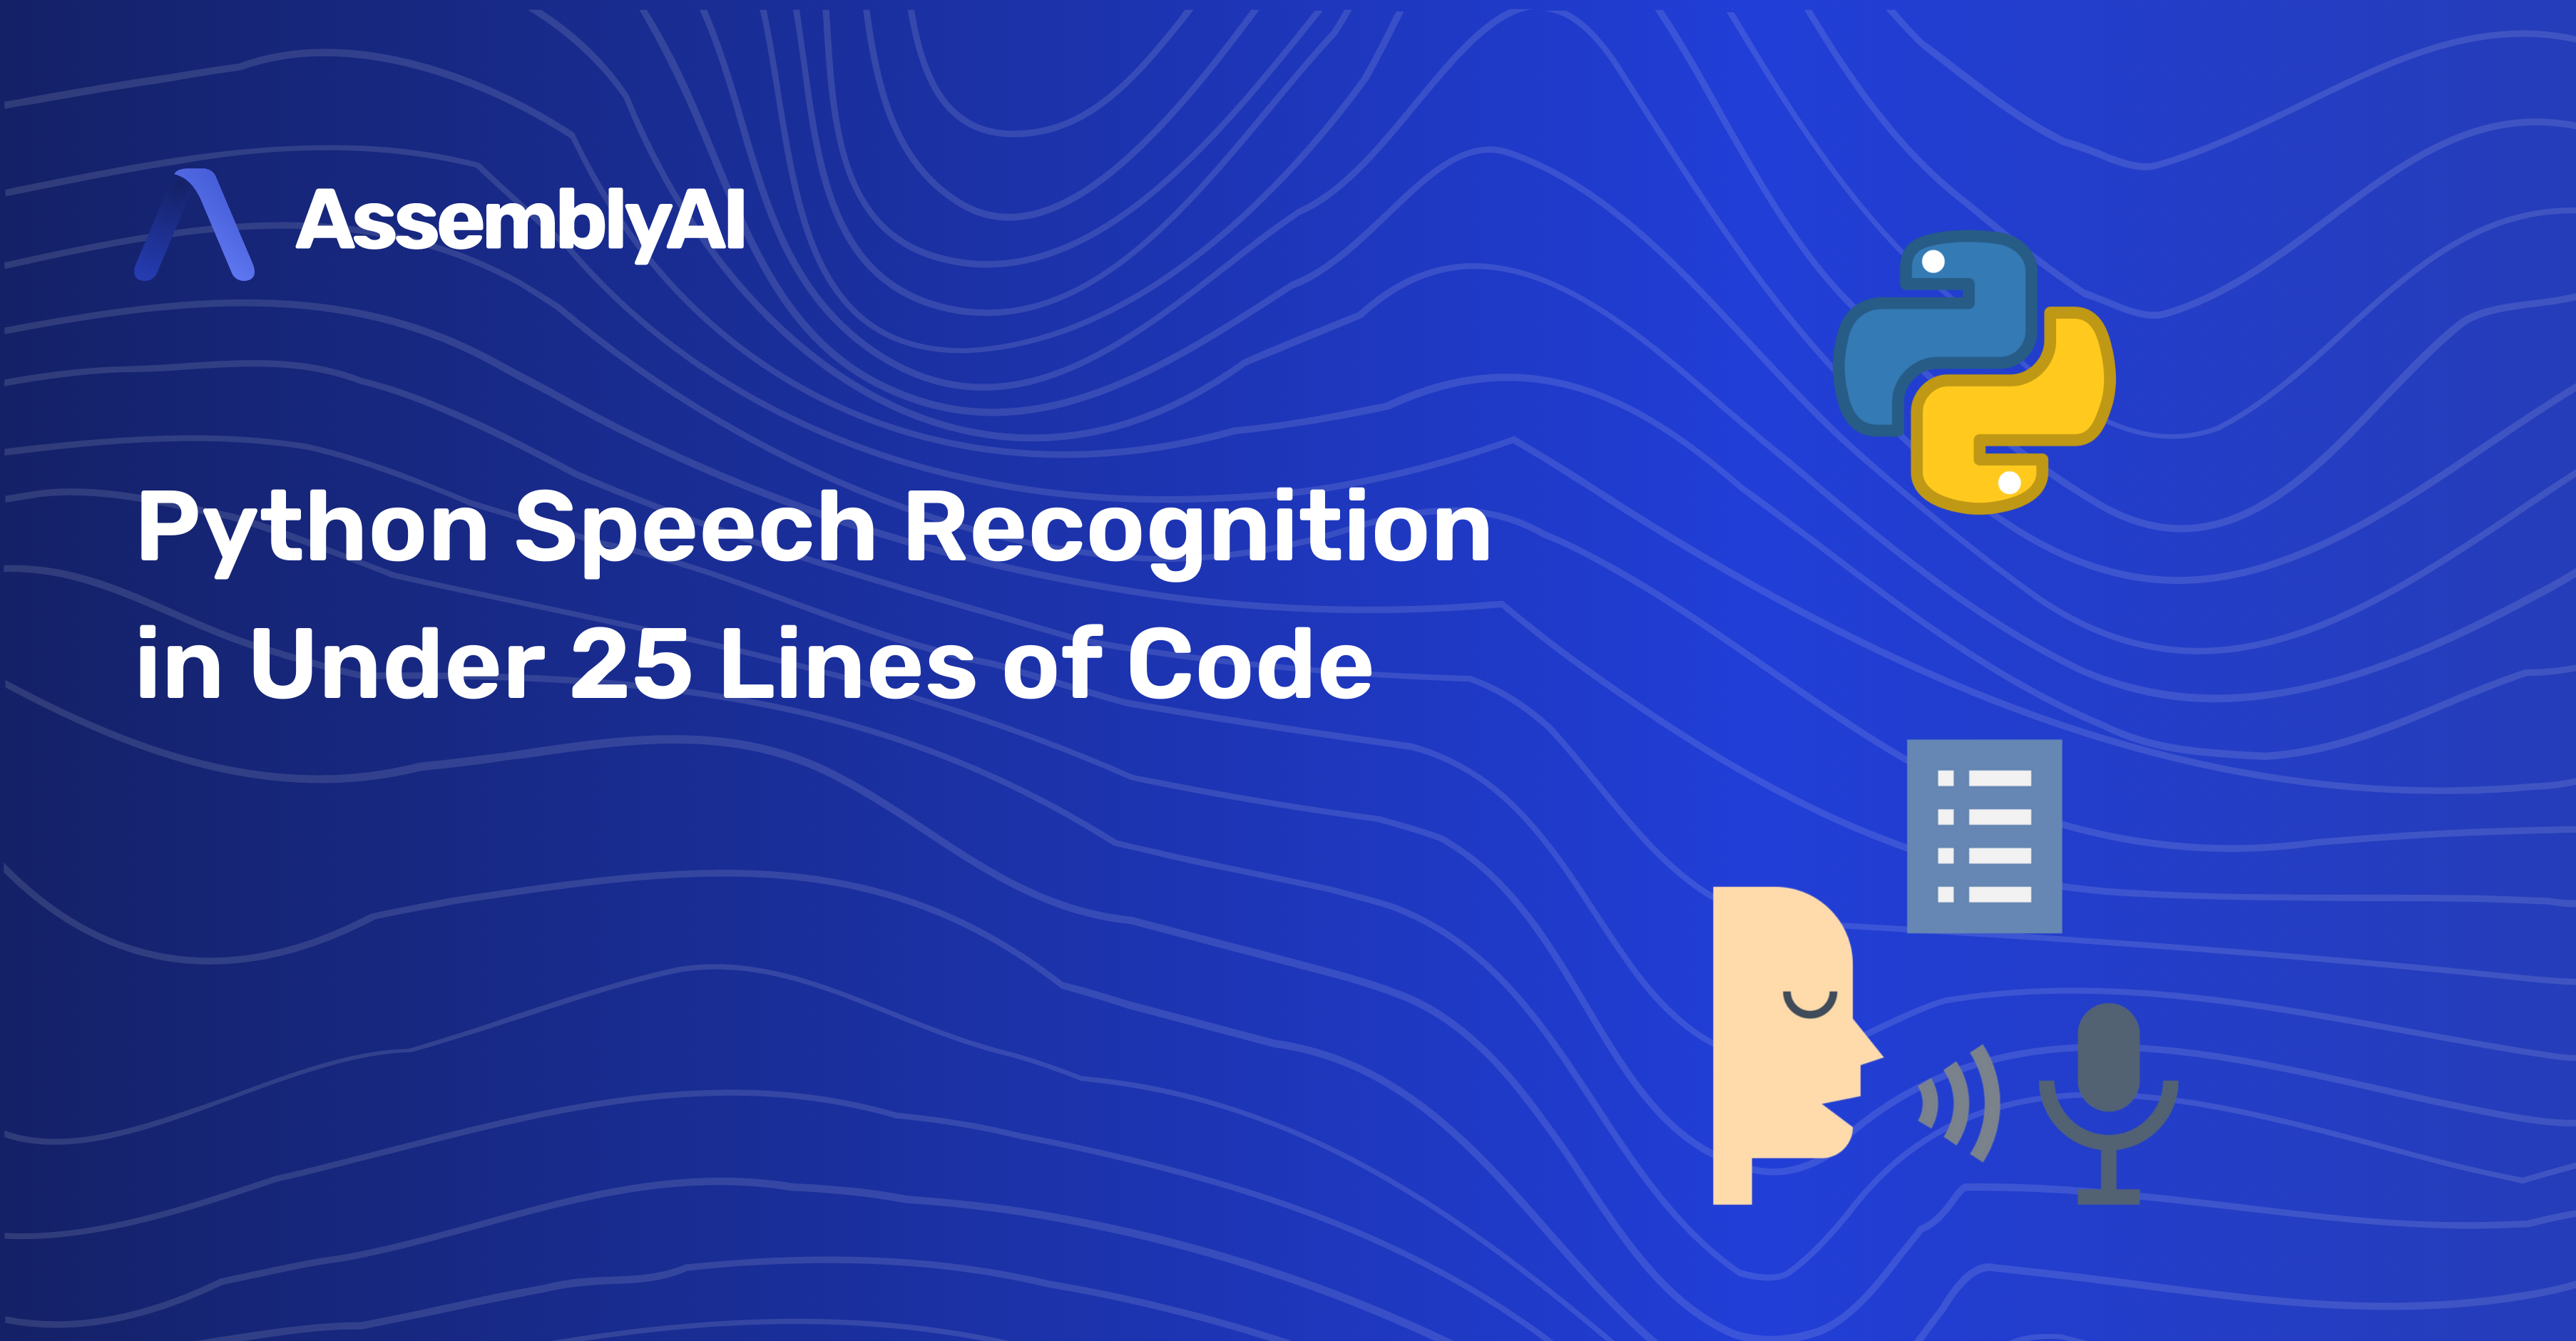 Python Speech Recognition in Under 25 Lines of Code